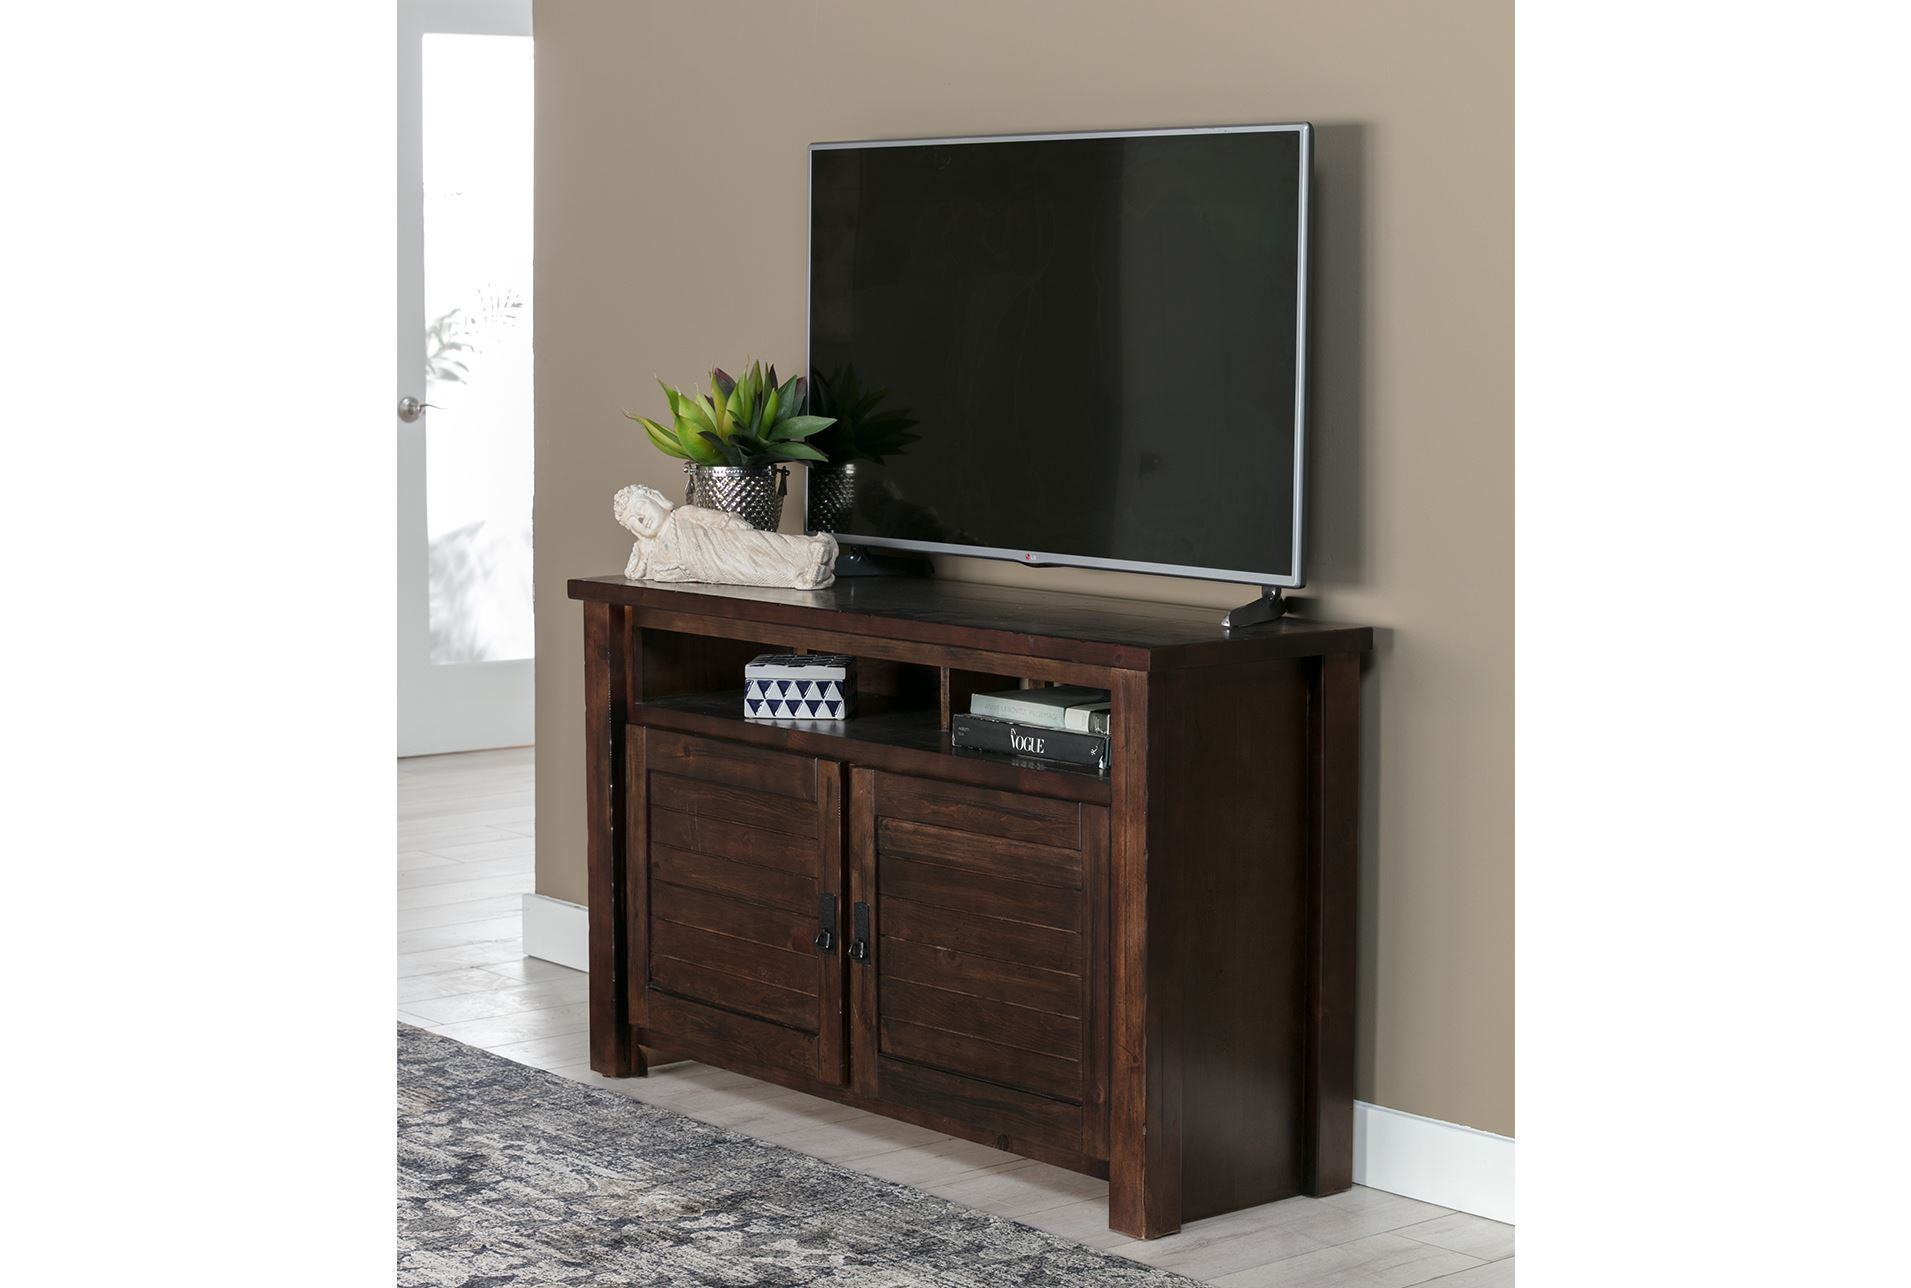 25 Creative 54 Inch Tv Stand Pictures | Cakestandlady With Sinclair Blue 54 Inch Tv Stands (Photo 22 of 30)